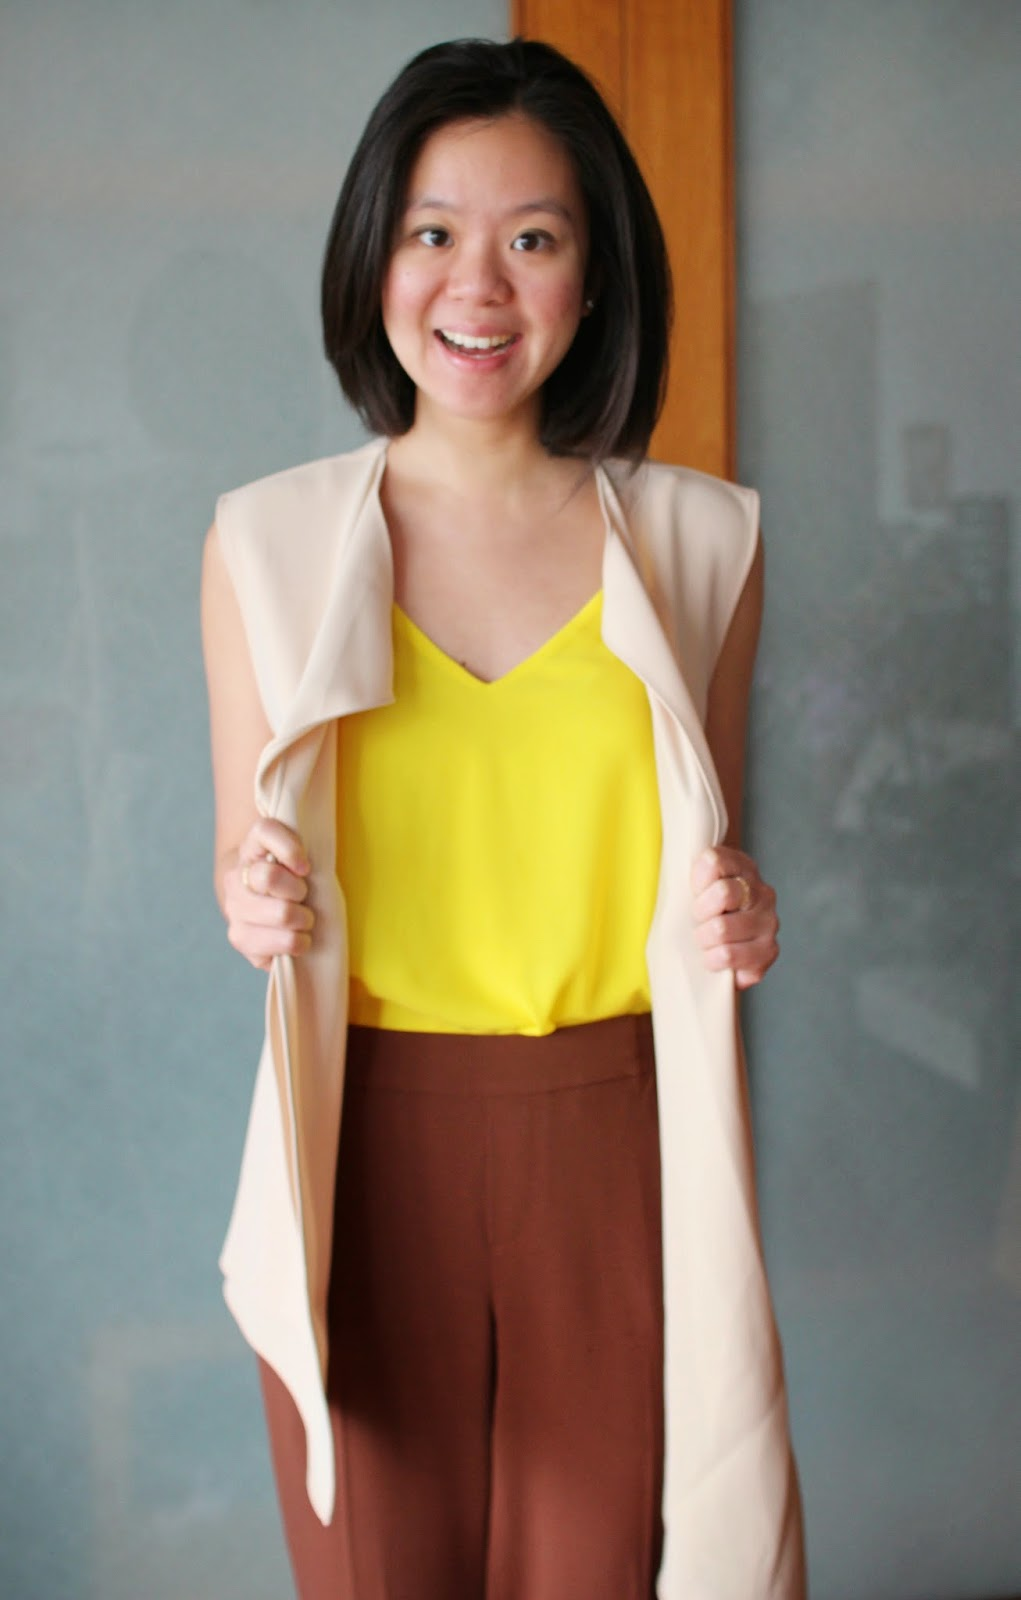 vest for spring, how to wear a vest, spring outfit, bright colors for spring, casual friday, wear to work, professional woman, work wear